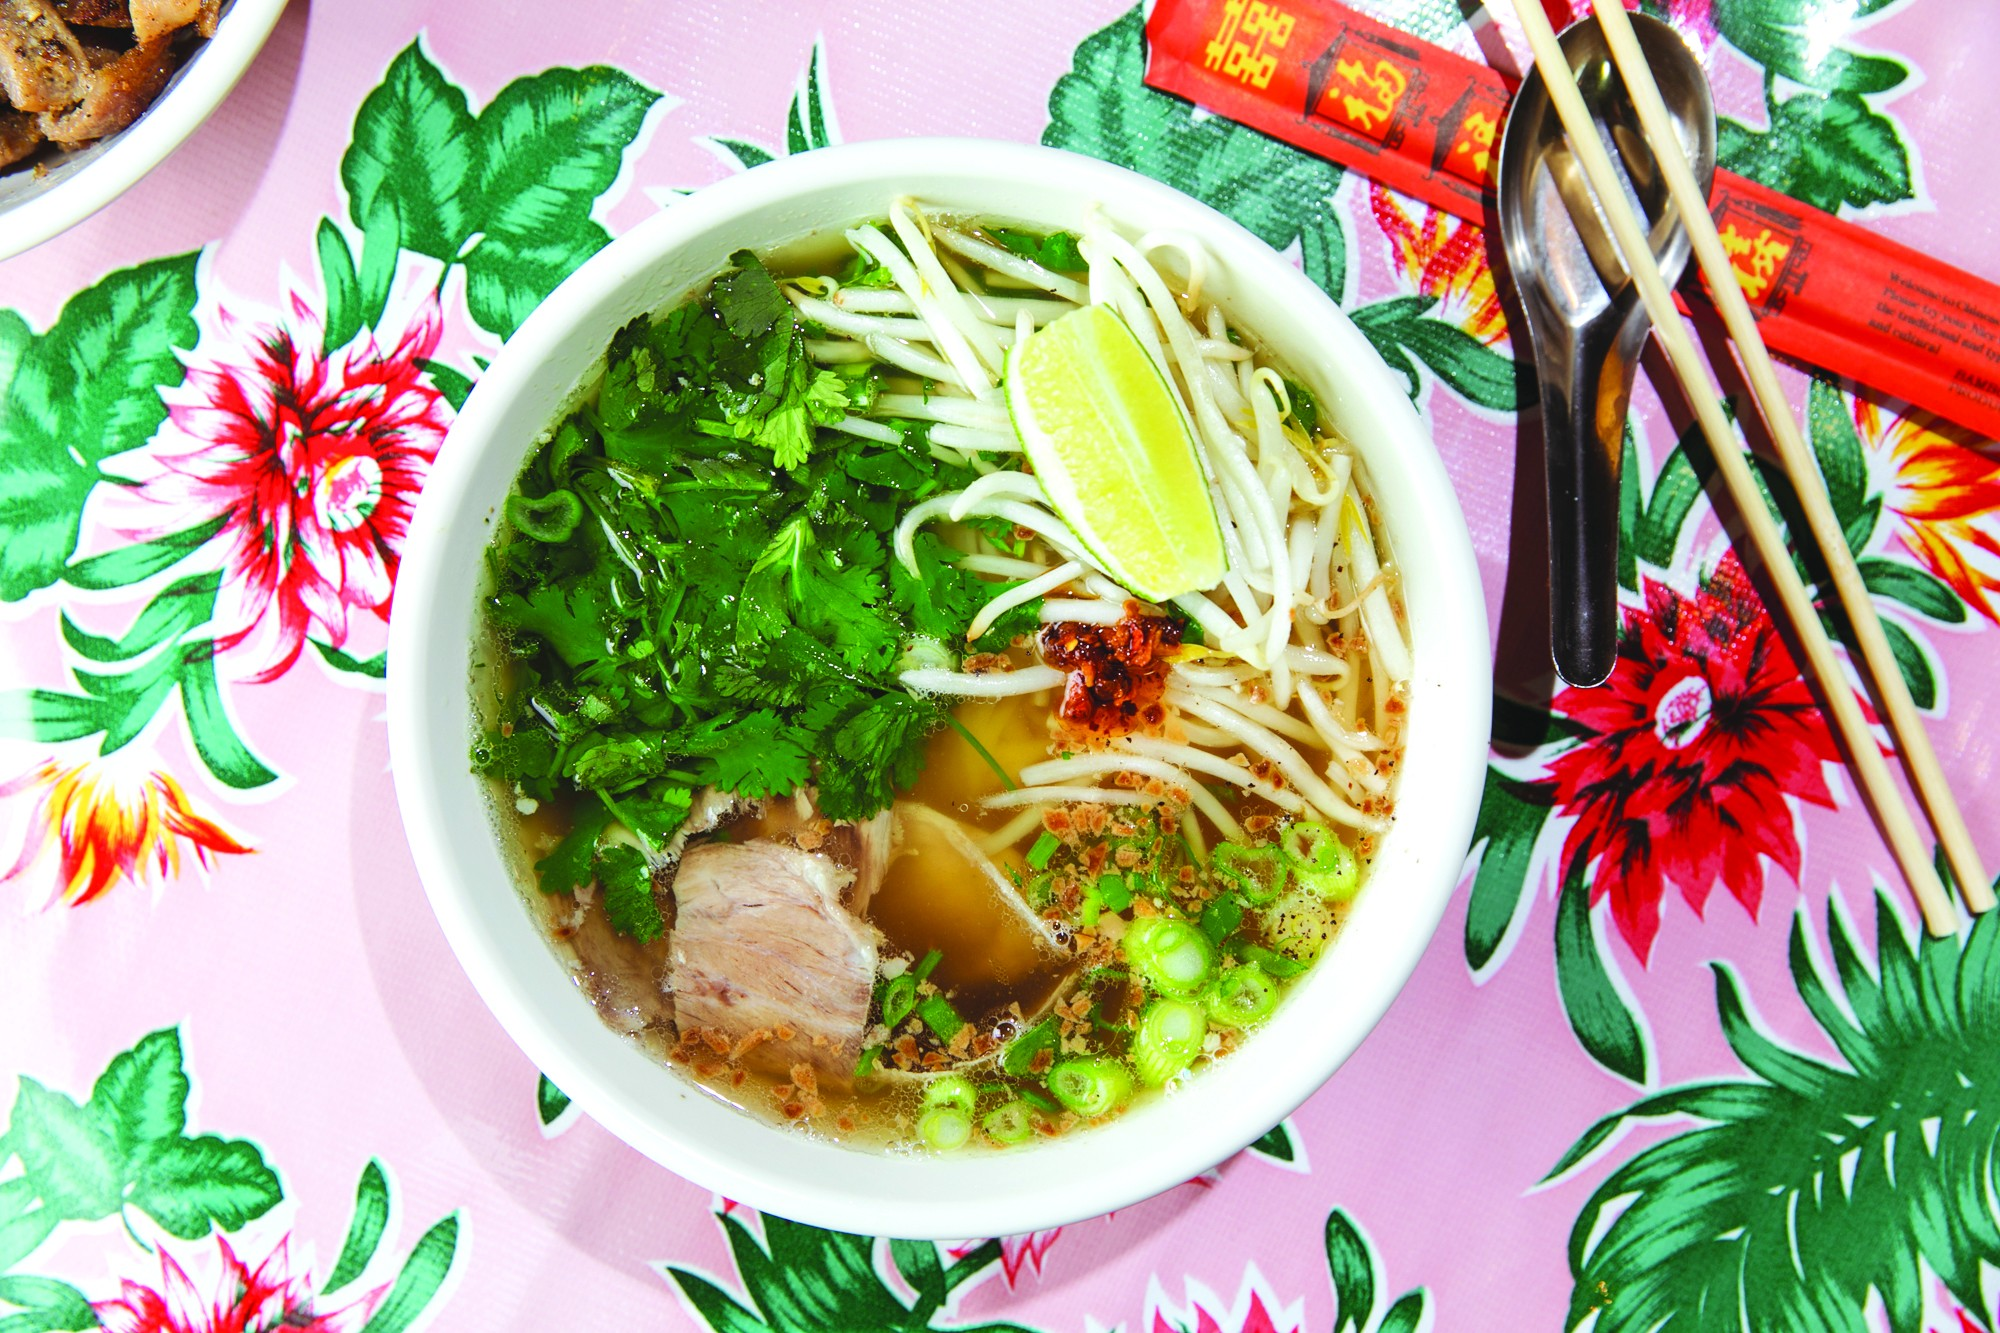 Five Soups to Help Warm Up This Winter | Food & Drink